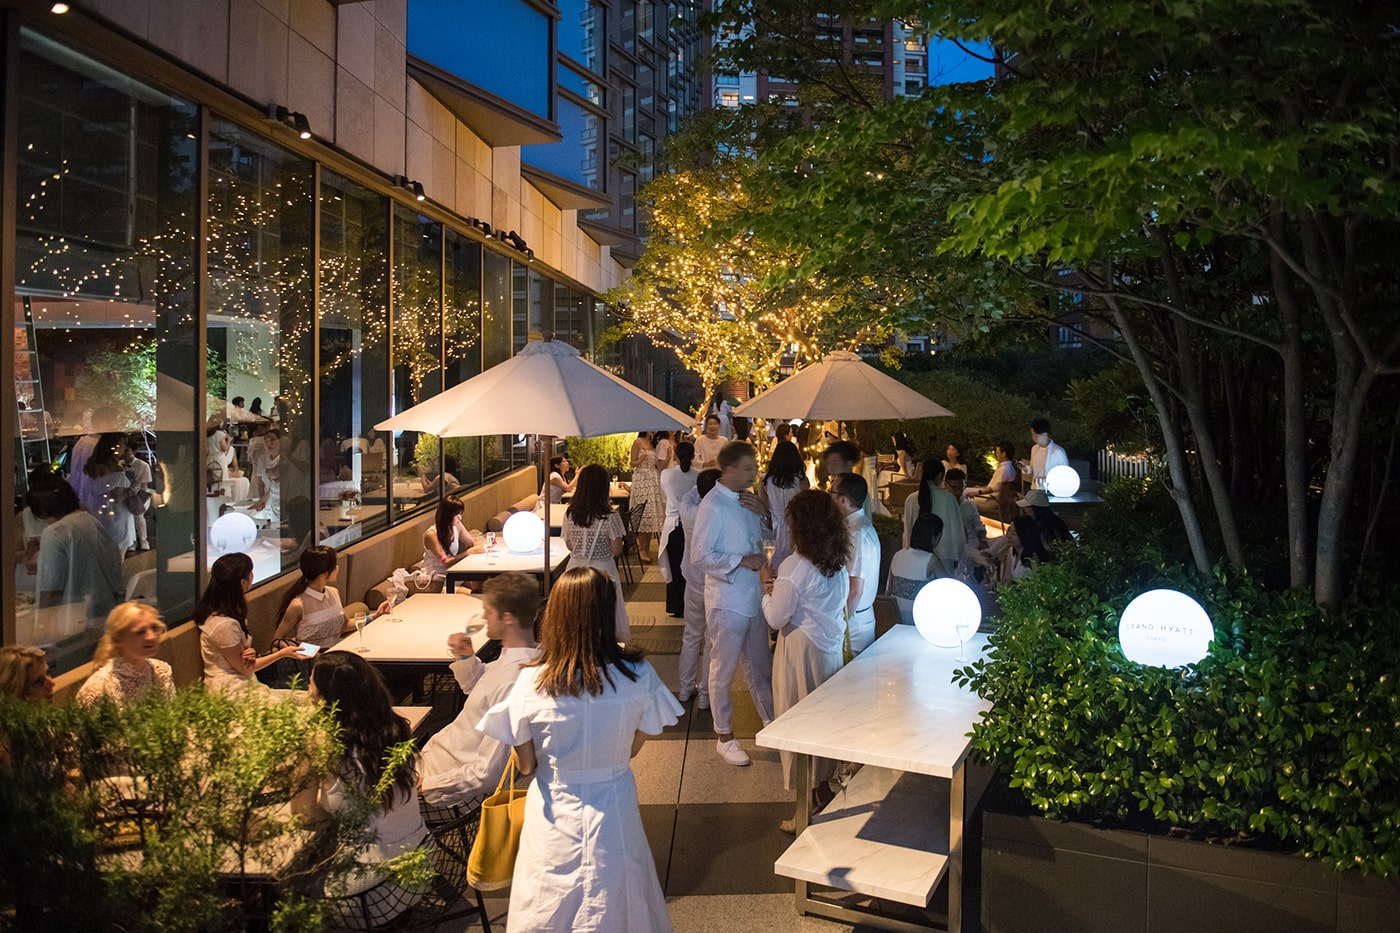 Soirée Blanche - French Moroccan Night: All White Summer Party